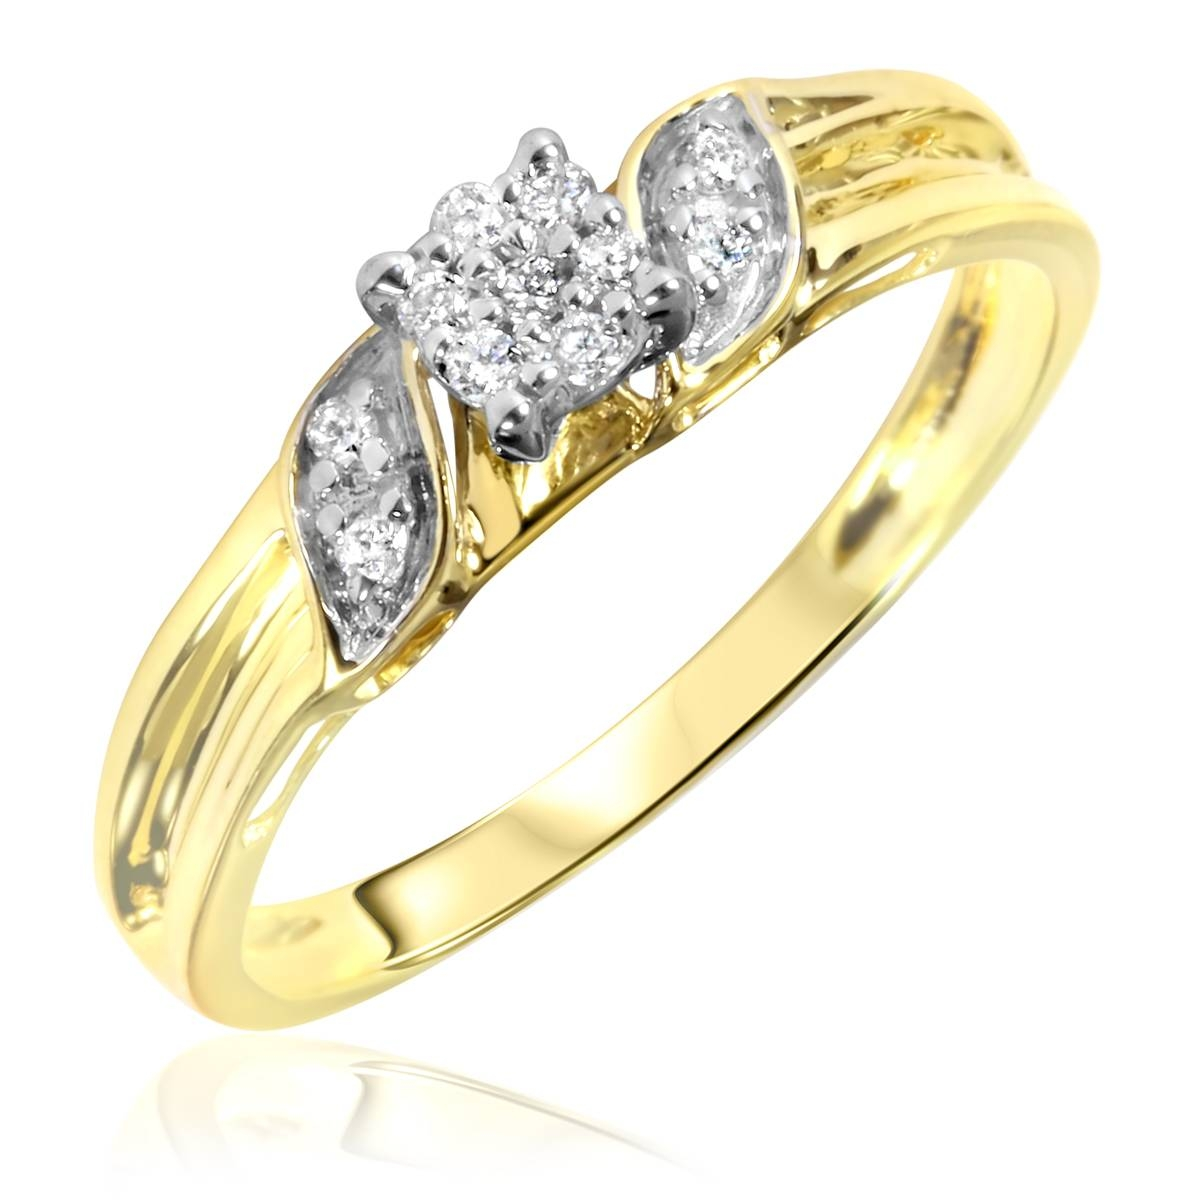 1/4 Carat Diamond Trio Wedding Ring Set 10K Yellow Gold With Regard To Yellow Diamond Wedding Sets (View 4 of 15)